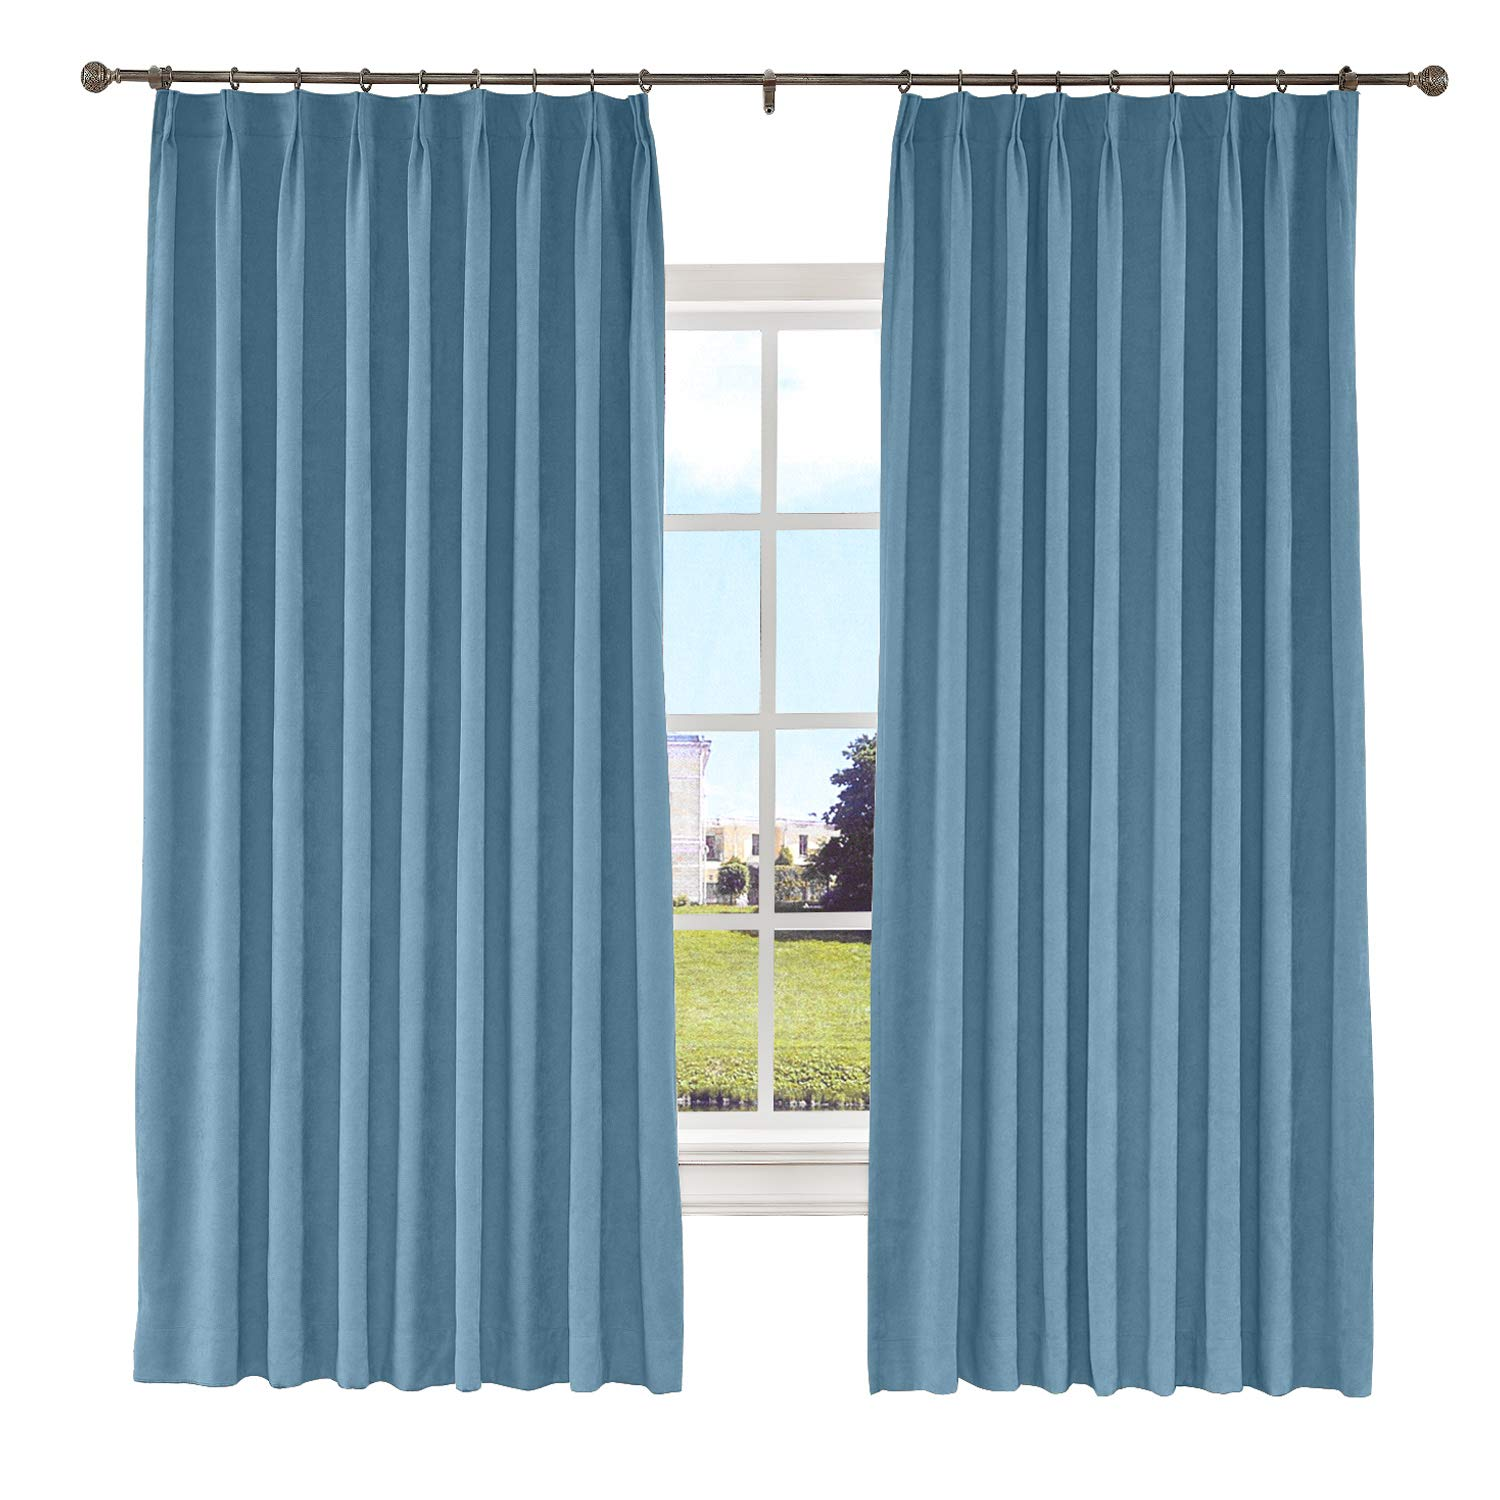 Macochico Extra Wide Polyster Cotton Curtains 120W x 96L Thermal Insulated Pinch Pleat Drapes with Blackout Lining for Sliding Door Patio Door Living Room Bedroom Theater,Light Blue(1 Panel)